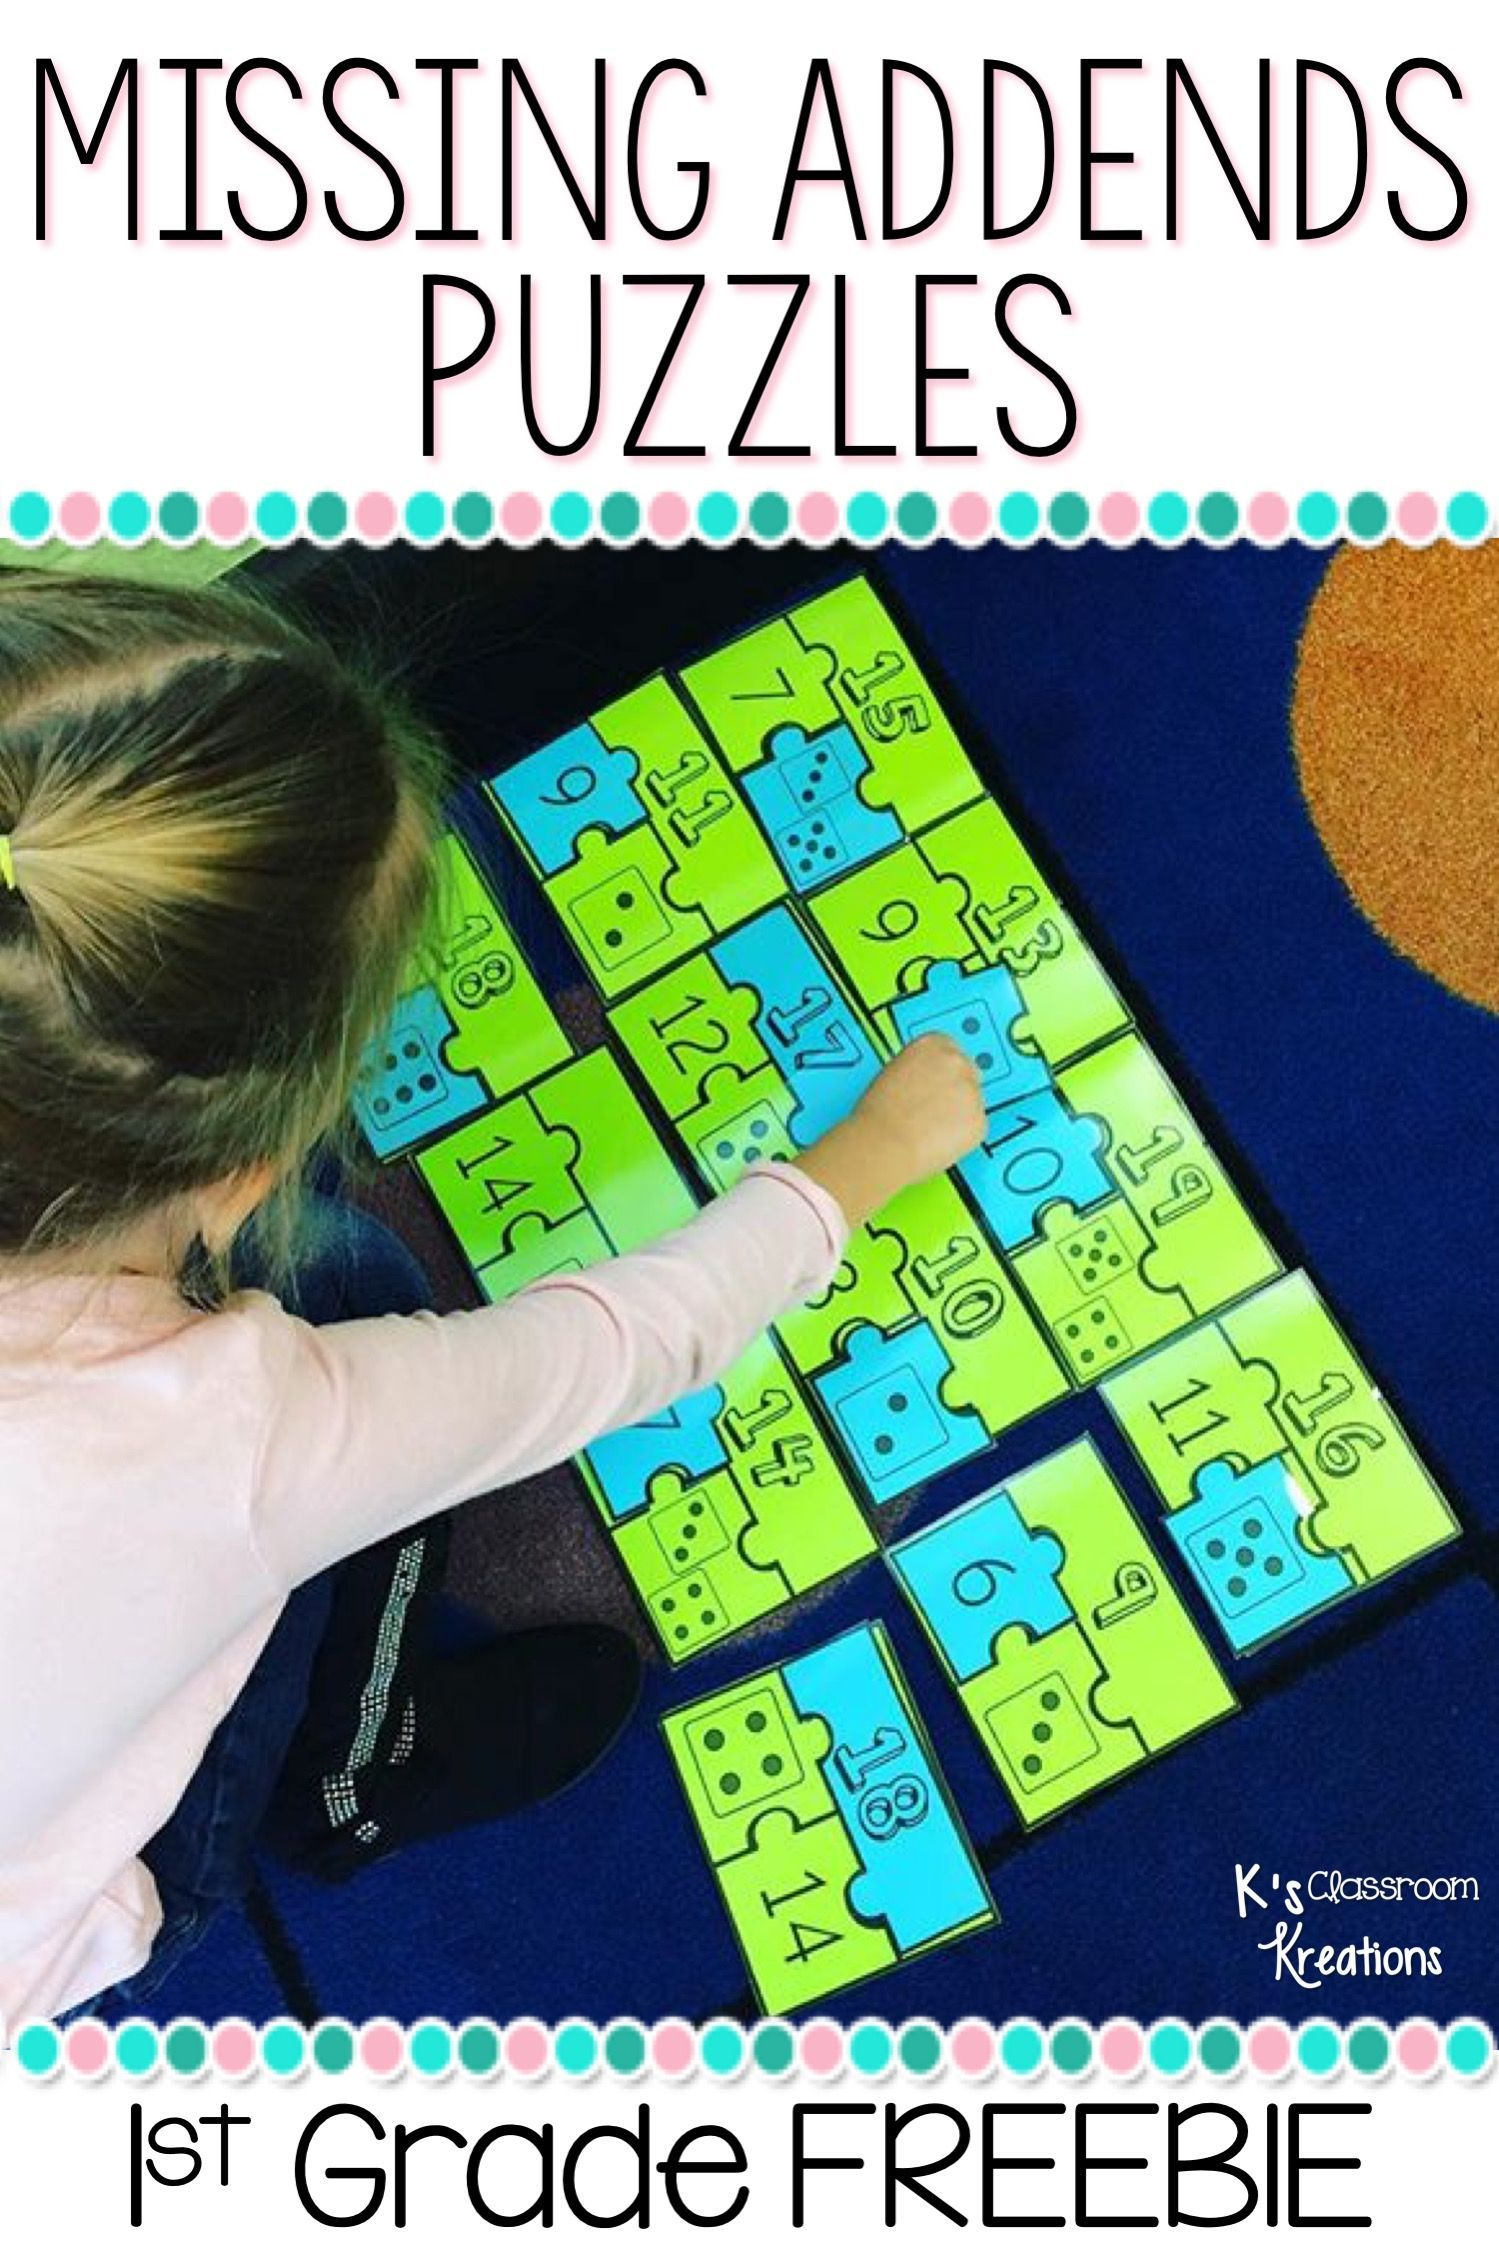 1 Oa 8 Missing Addends Puzzle Freebie